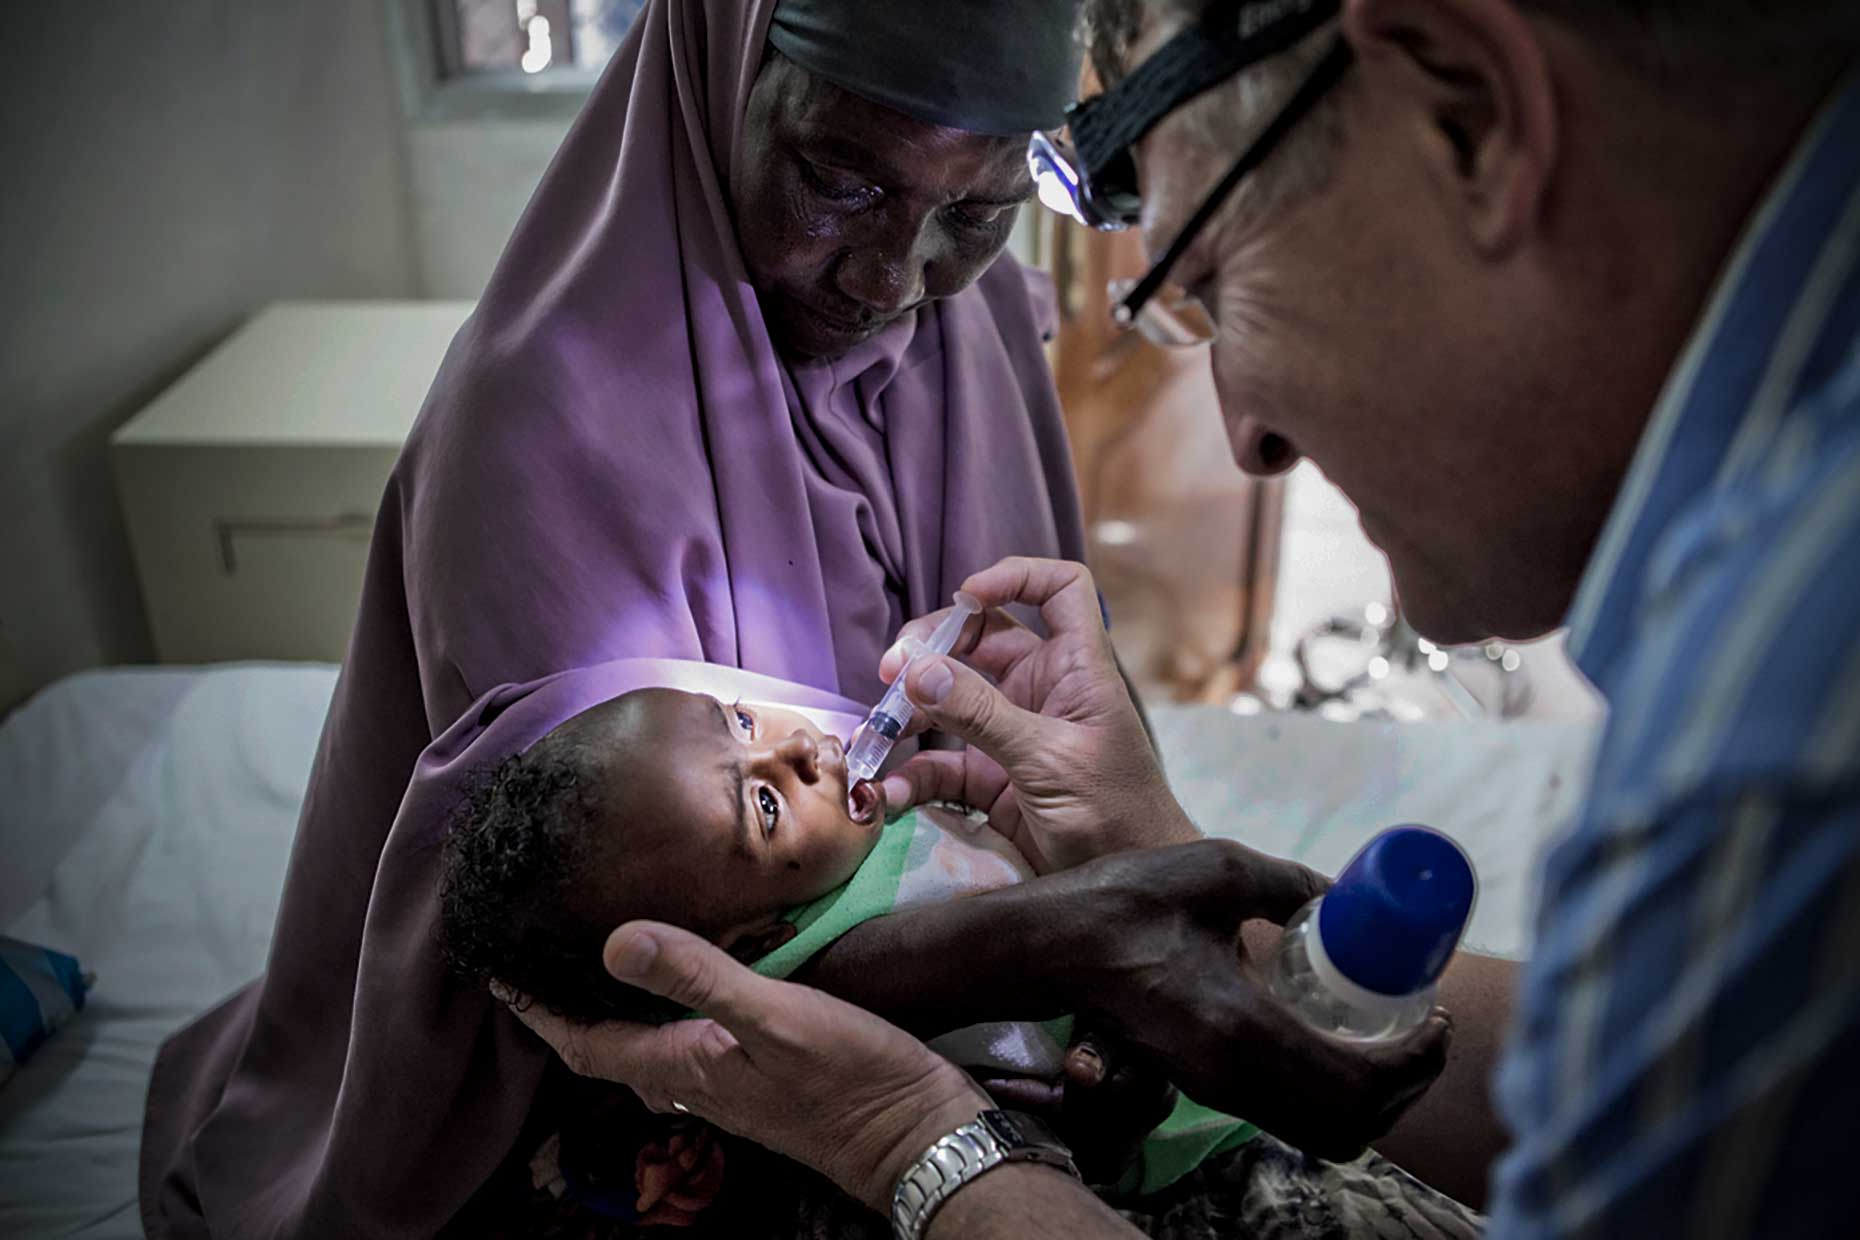 Doctor helping a dehydrated child